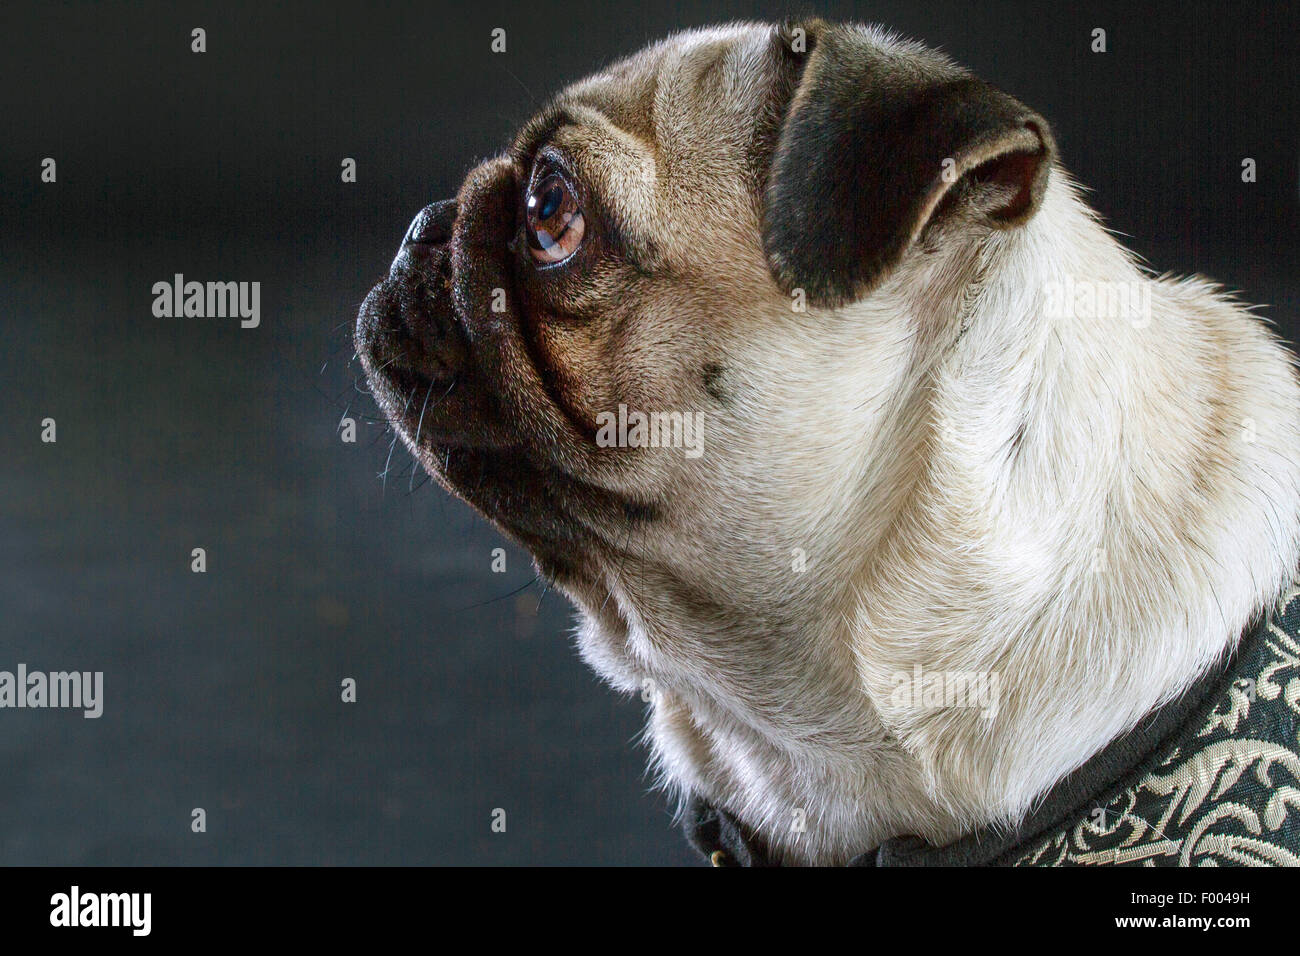 Pug (Canis lupus f. familiaris), portrait in front of black background, side view - Stock Image